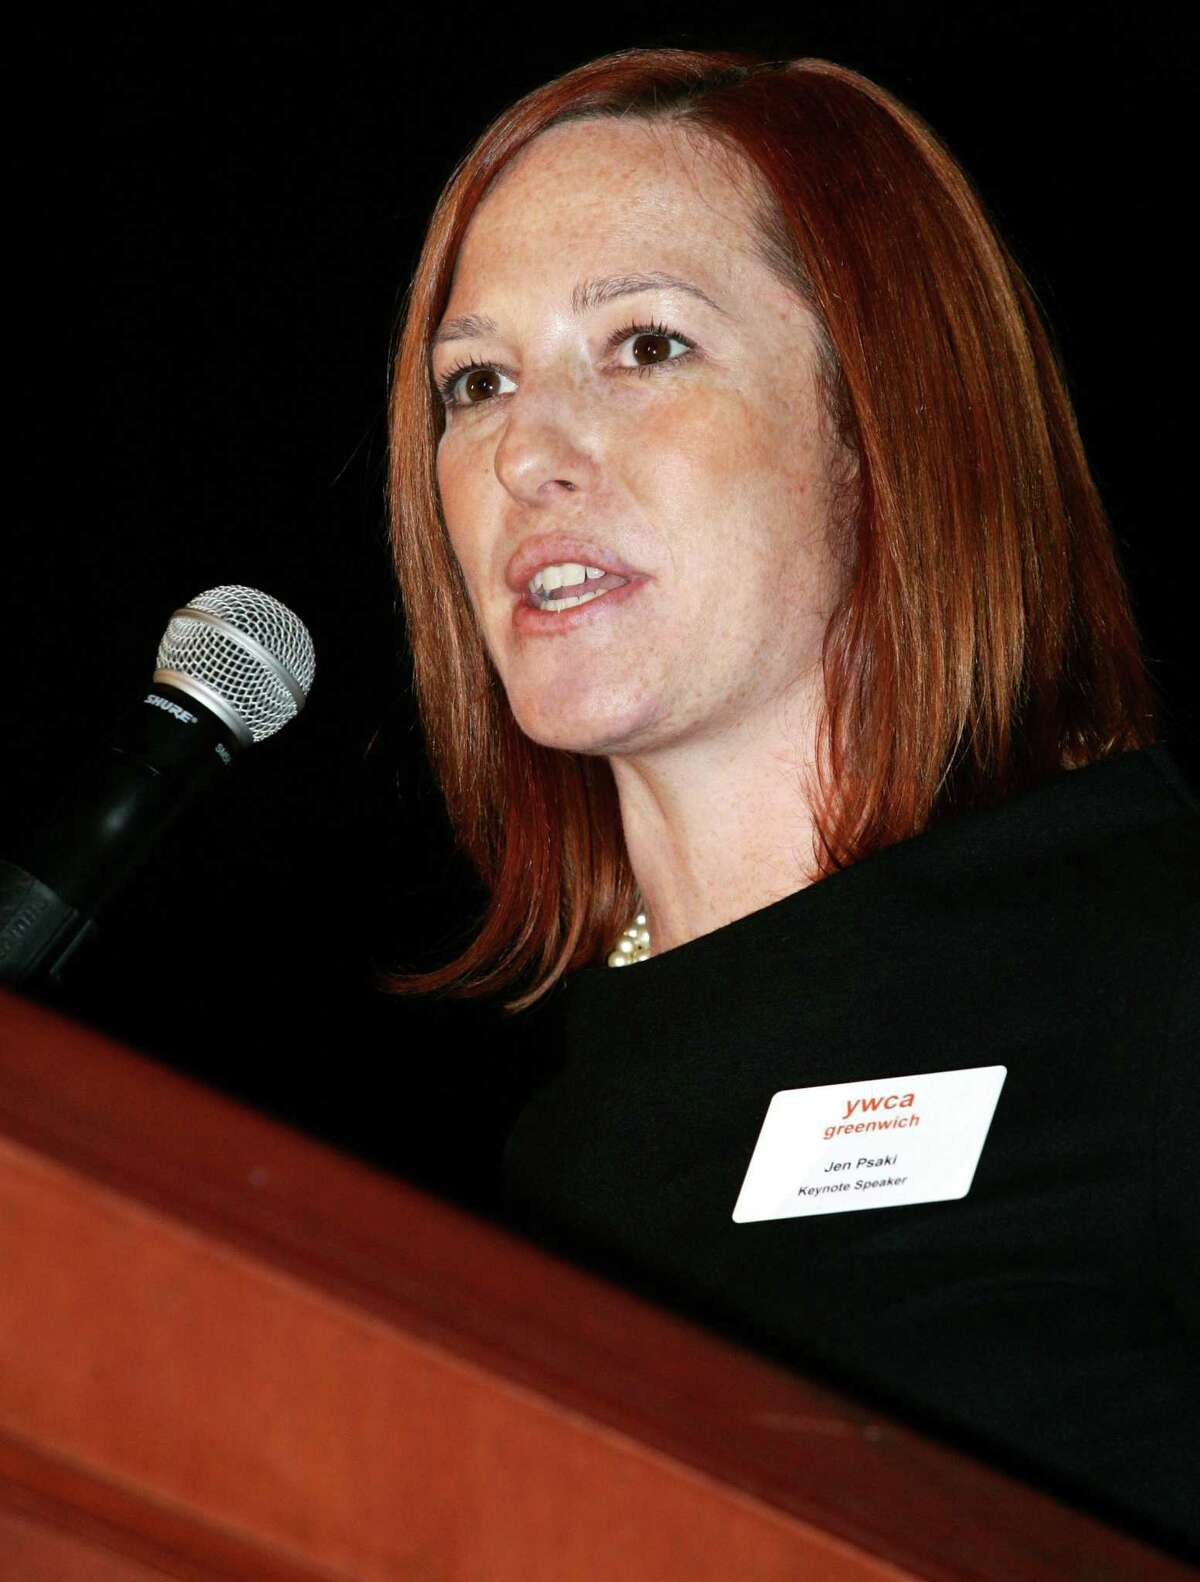 Greenwich High School graduate Jen Psaki. then the senior vice president and managing director of Global Strategy Group, gave the keynote address at the BRAVA awards, sponsored by the YWCA and held at the Hyatt Regency Greenwich on Friday, Feb. 3, 2012.